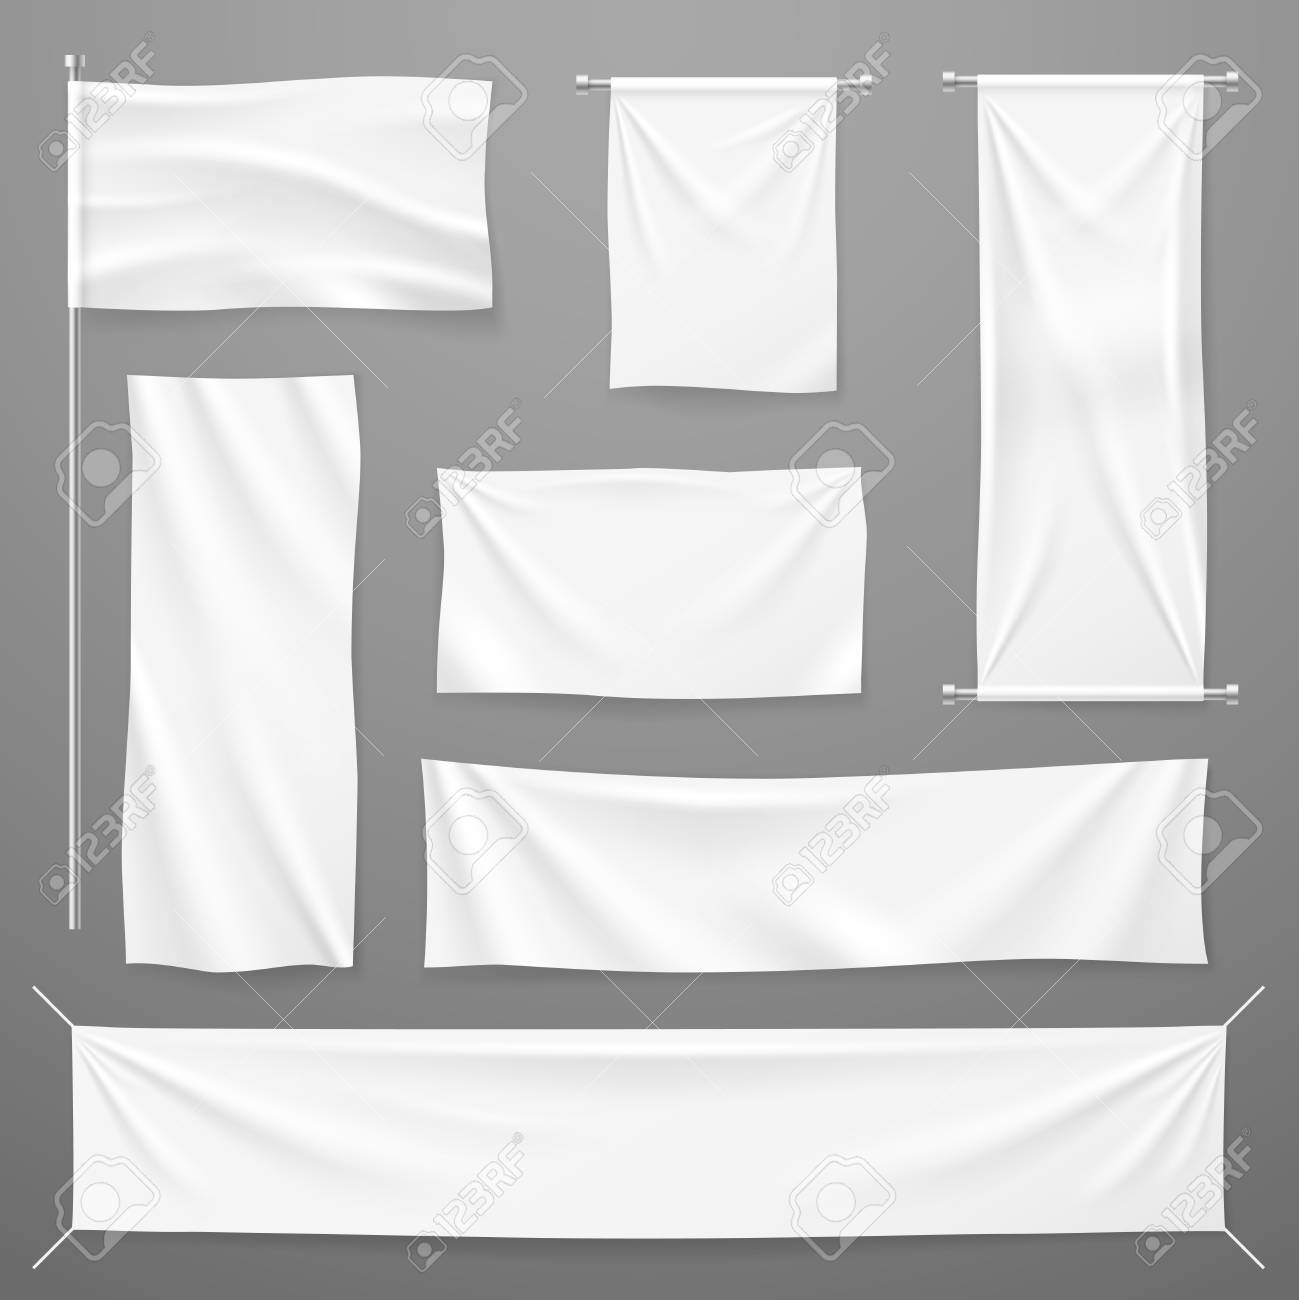 White textile advertising banners. Blank fabric cloths hanging on rope. Folded empty cotton stretched canvas. Vector mockup. Illustration of banner textile for advertising, realistic horizontal sheet - 126478327